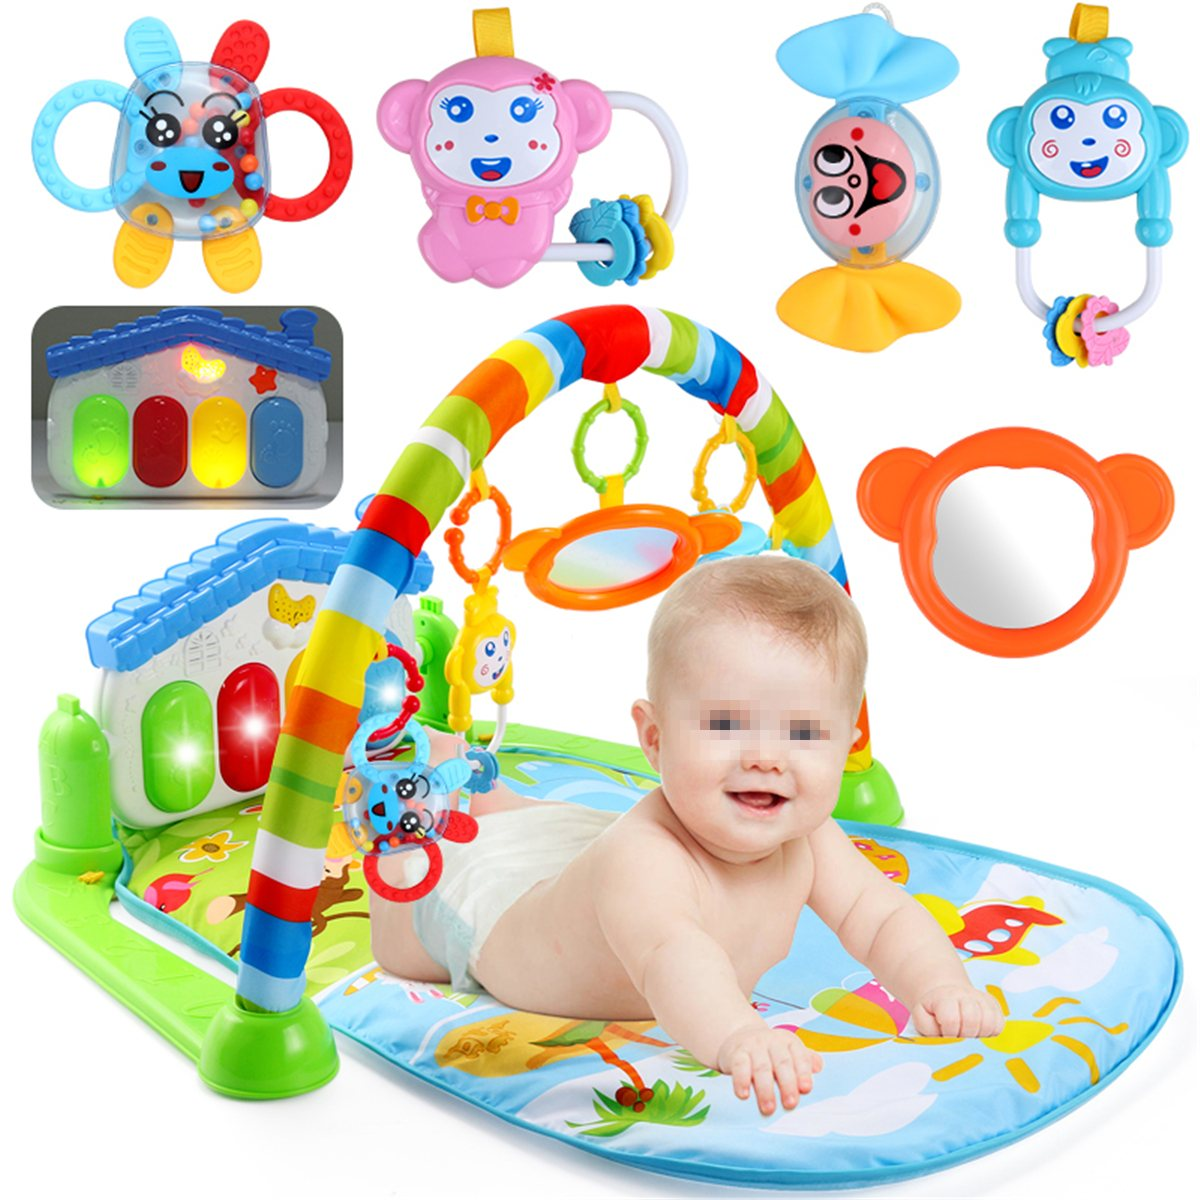 3 In 1 Newborn Infant Baby Game Bed Baby Toddler Cribs Crawling Activity Gym Mat Floor Blanket